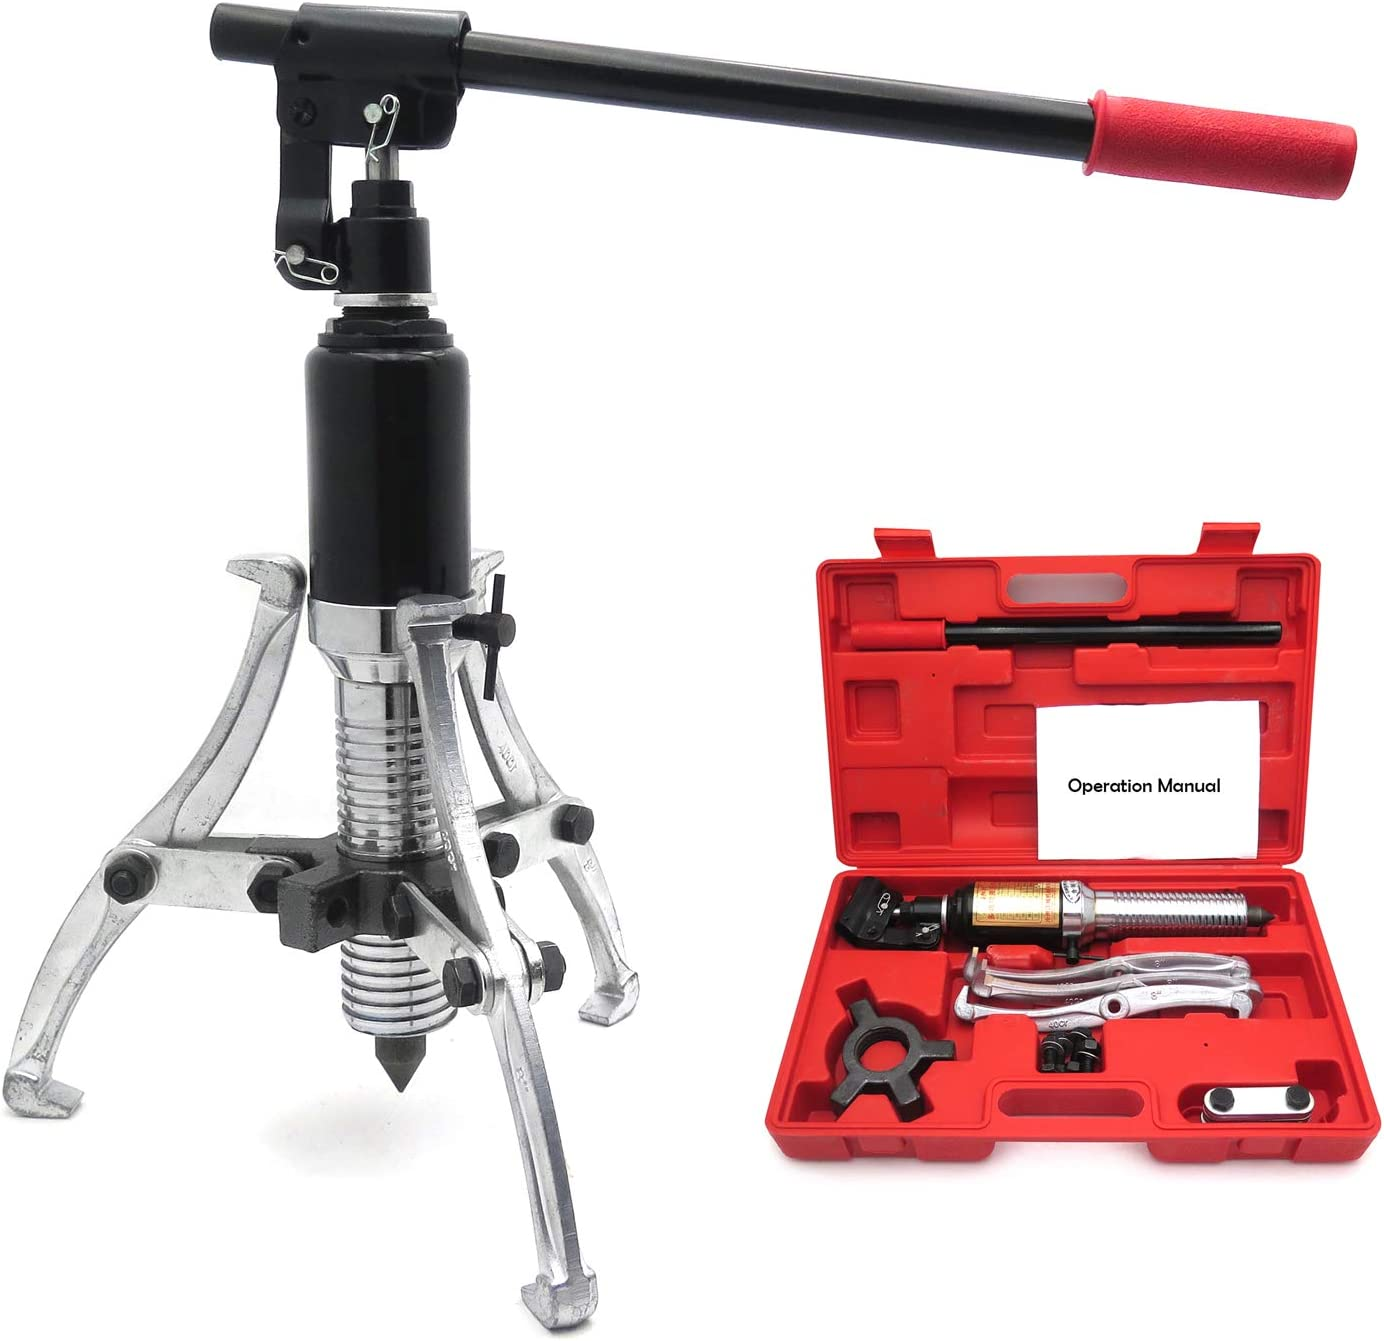 XKH- Large special price Vehicle 10 supreme Ton 3 Jaw Gear Puller 3in1 Pulling Hydraulic 360